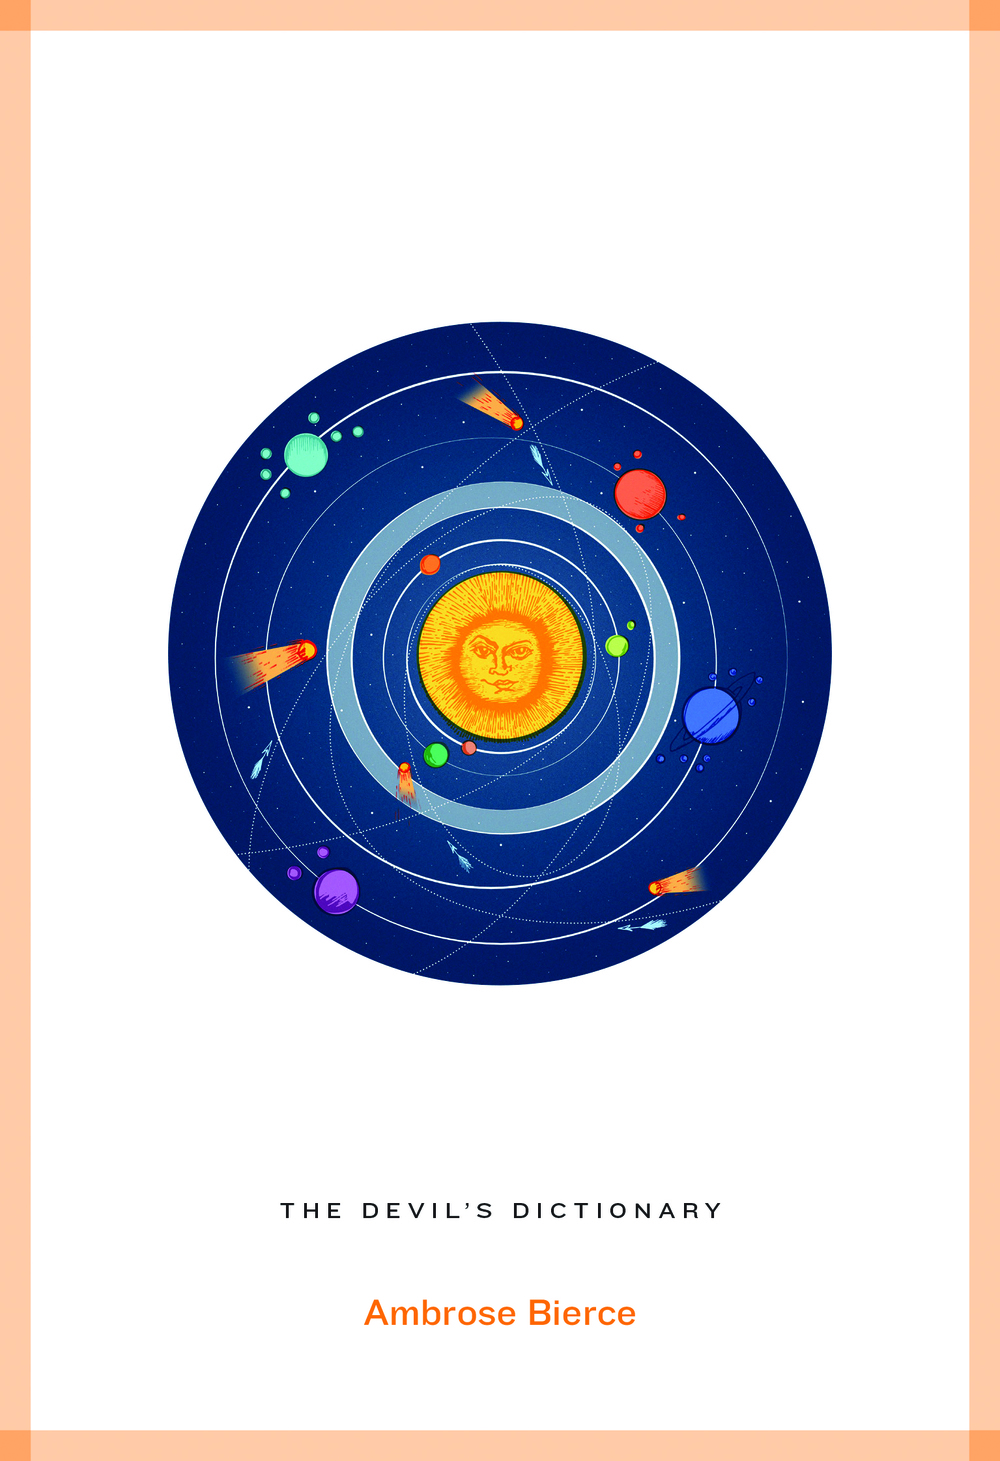 9781909399600 The Devil's Dictionary.jpg